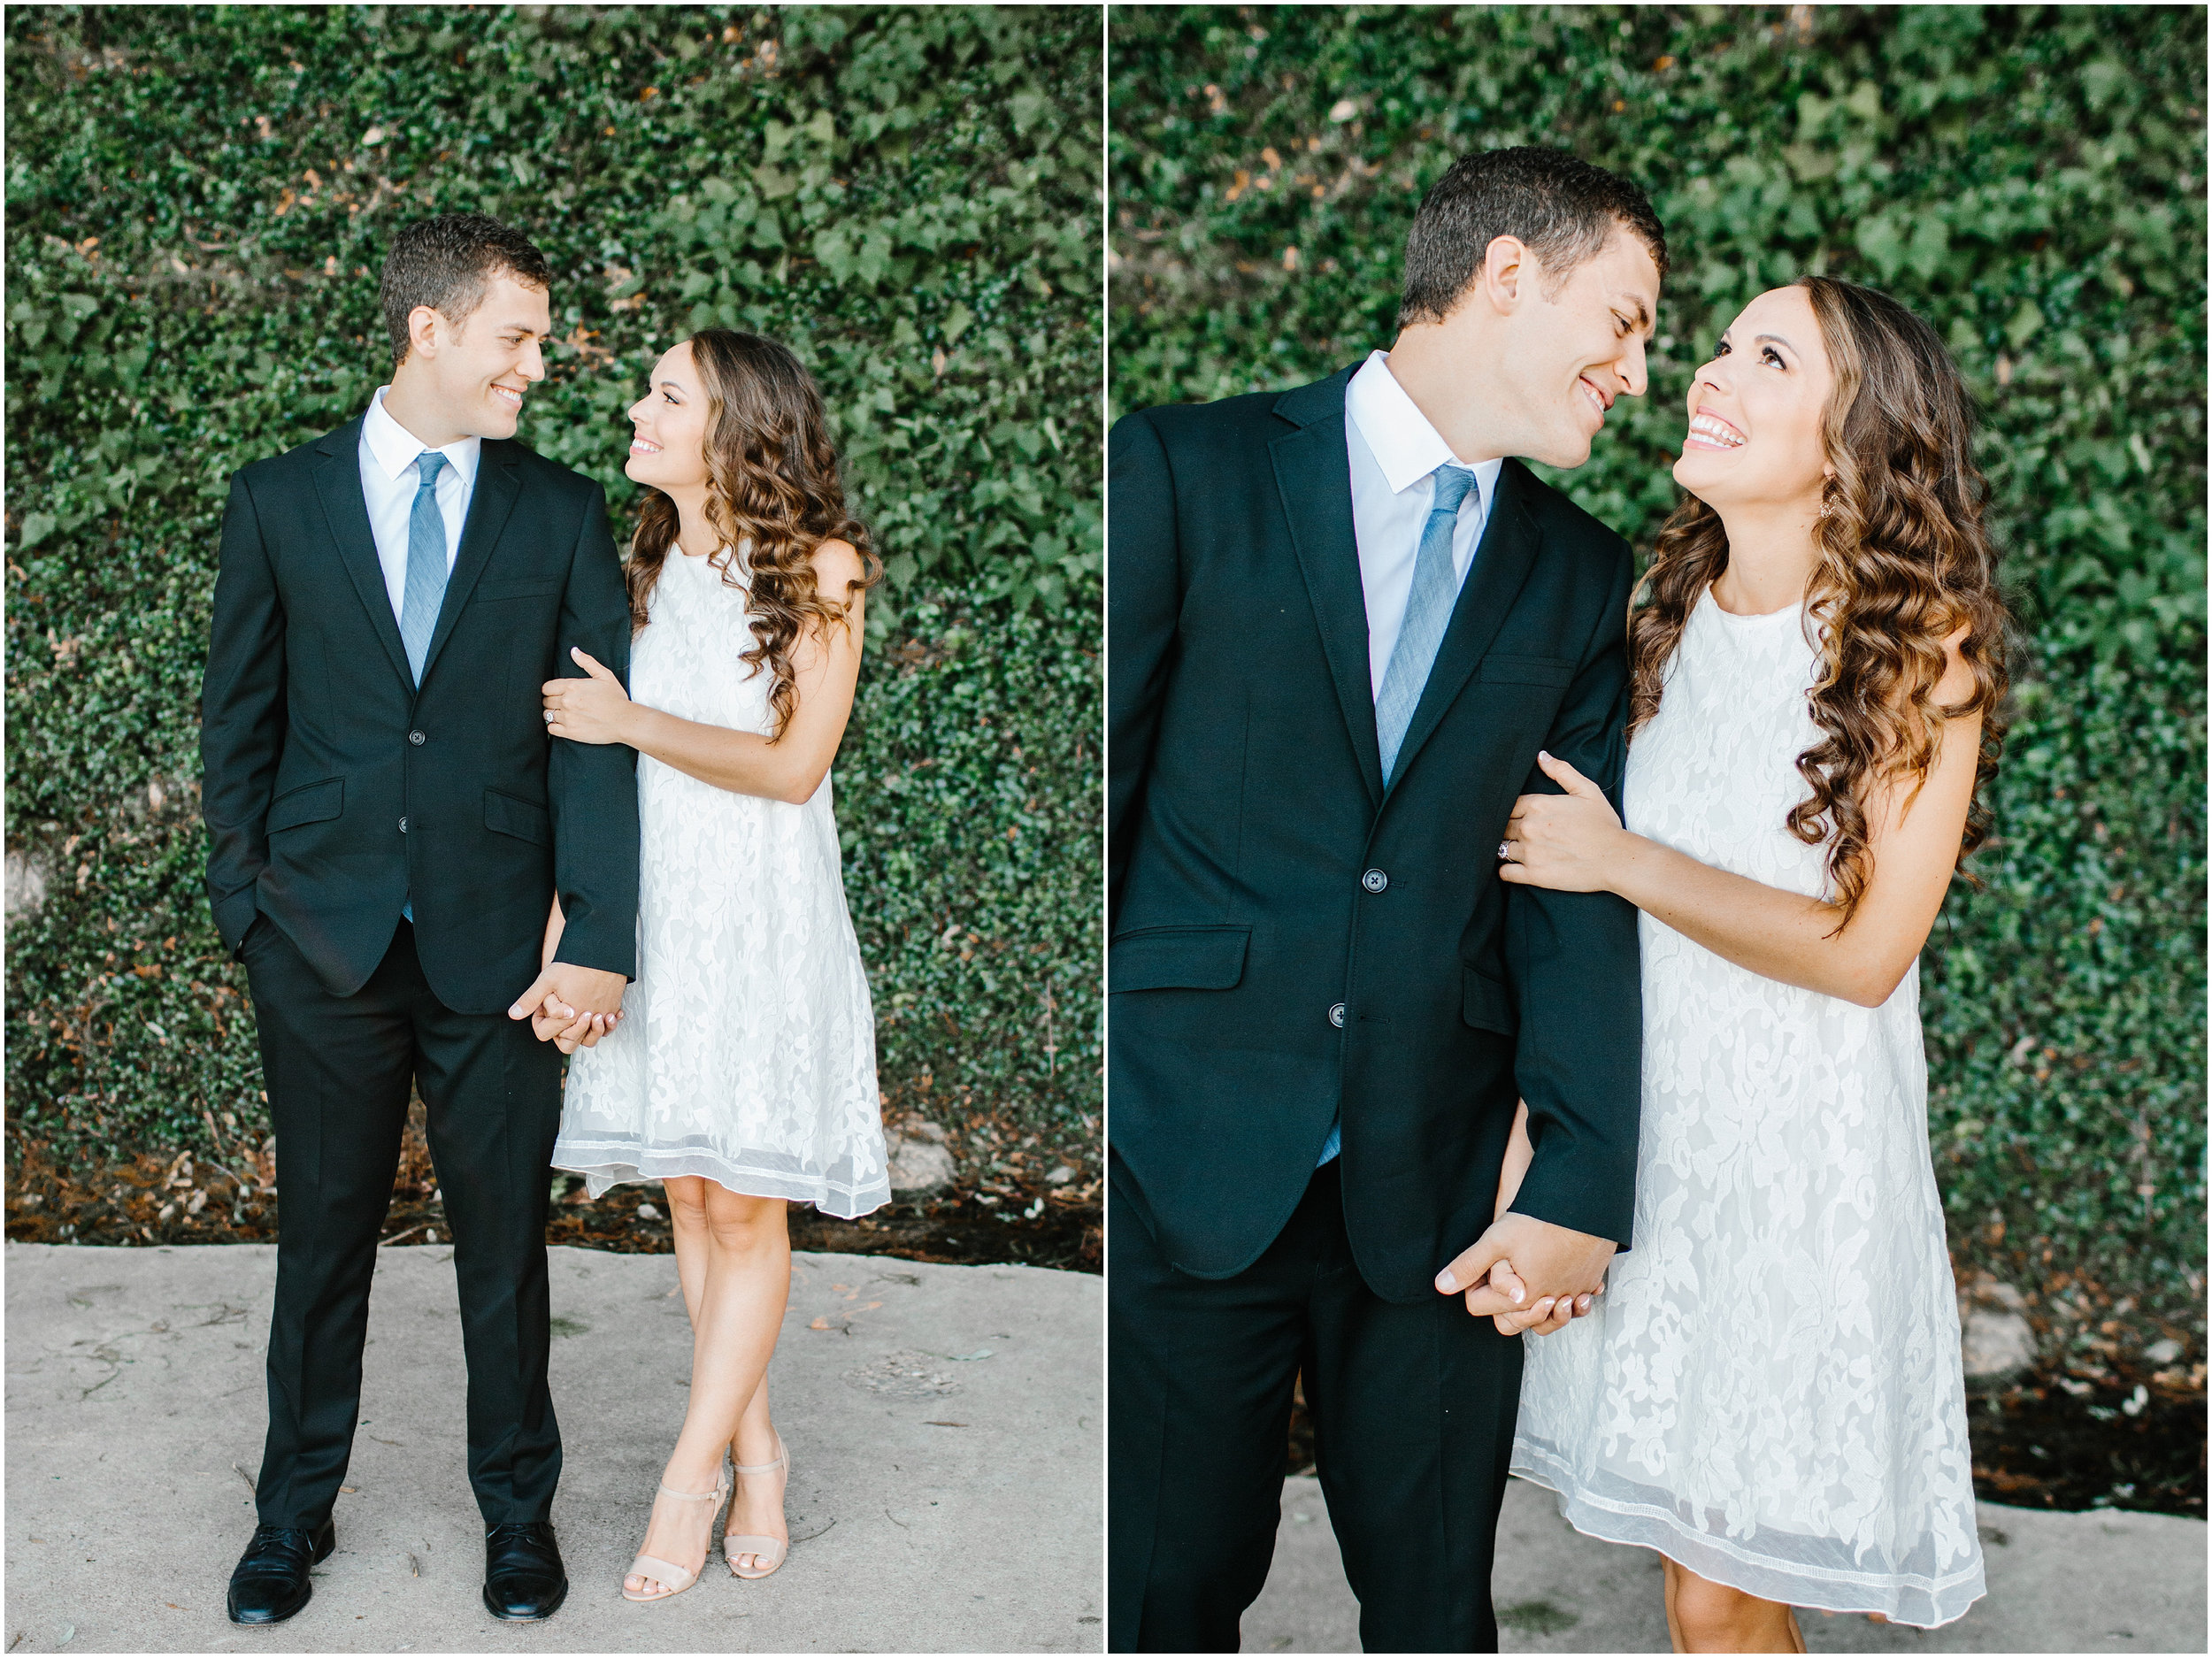 Downtown_Waco_Engagement_Session-47.jpg